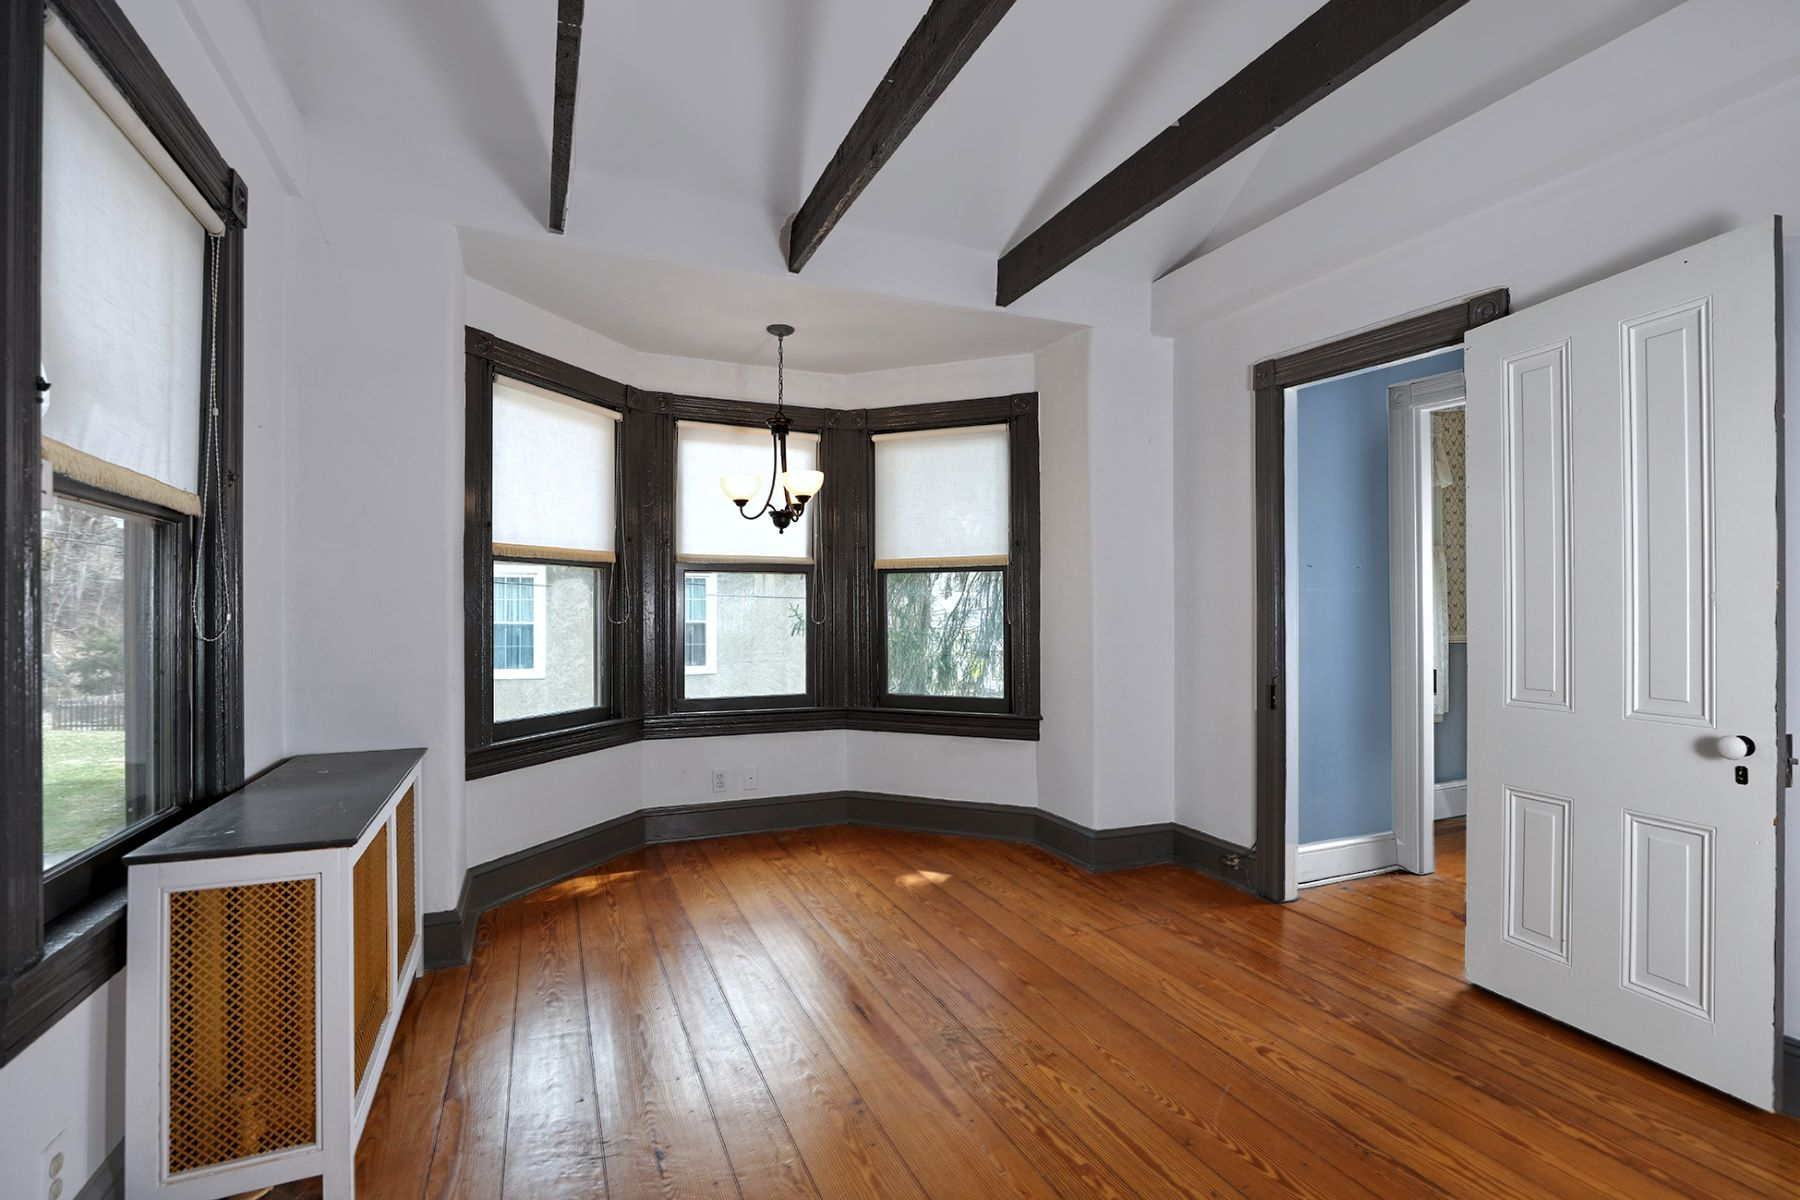 Additional photo for property listing at Work From Home In The Heart Of Town 3 South Main Street, Stockton, Nova Jersey 08559 Estados Unidos